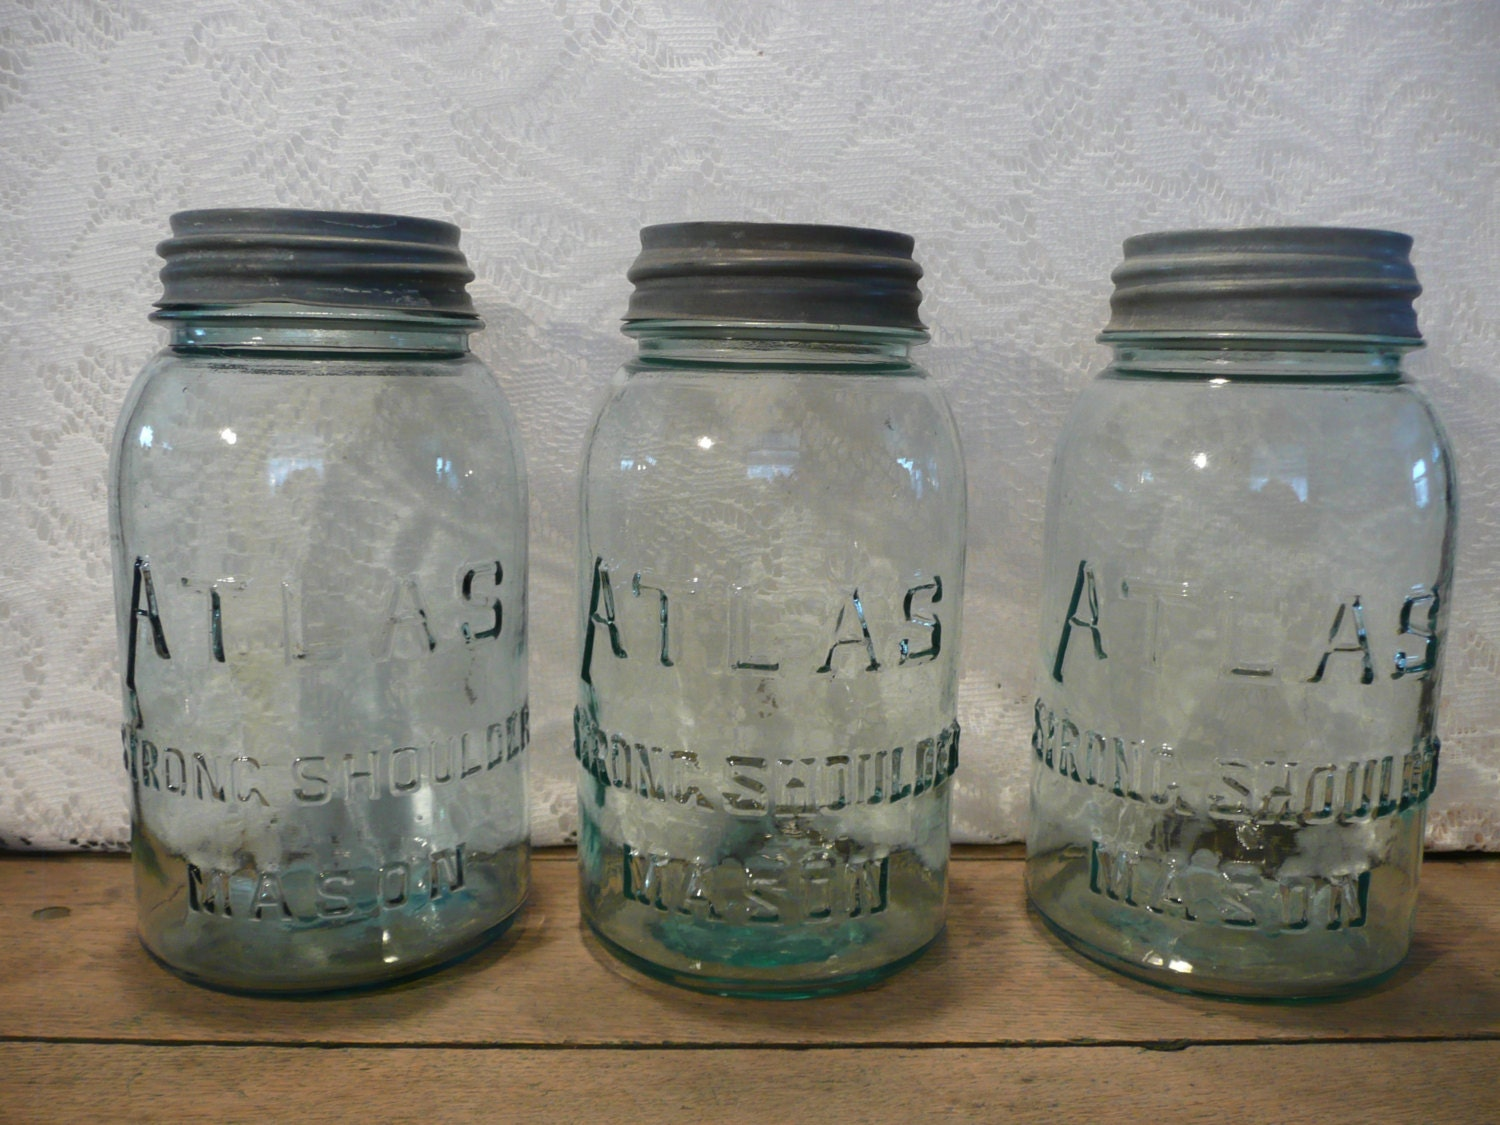 Dating presto mason jars